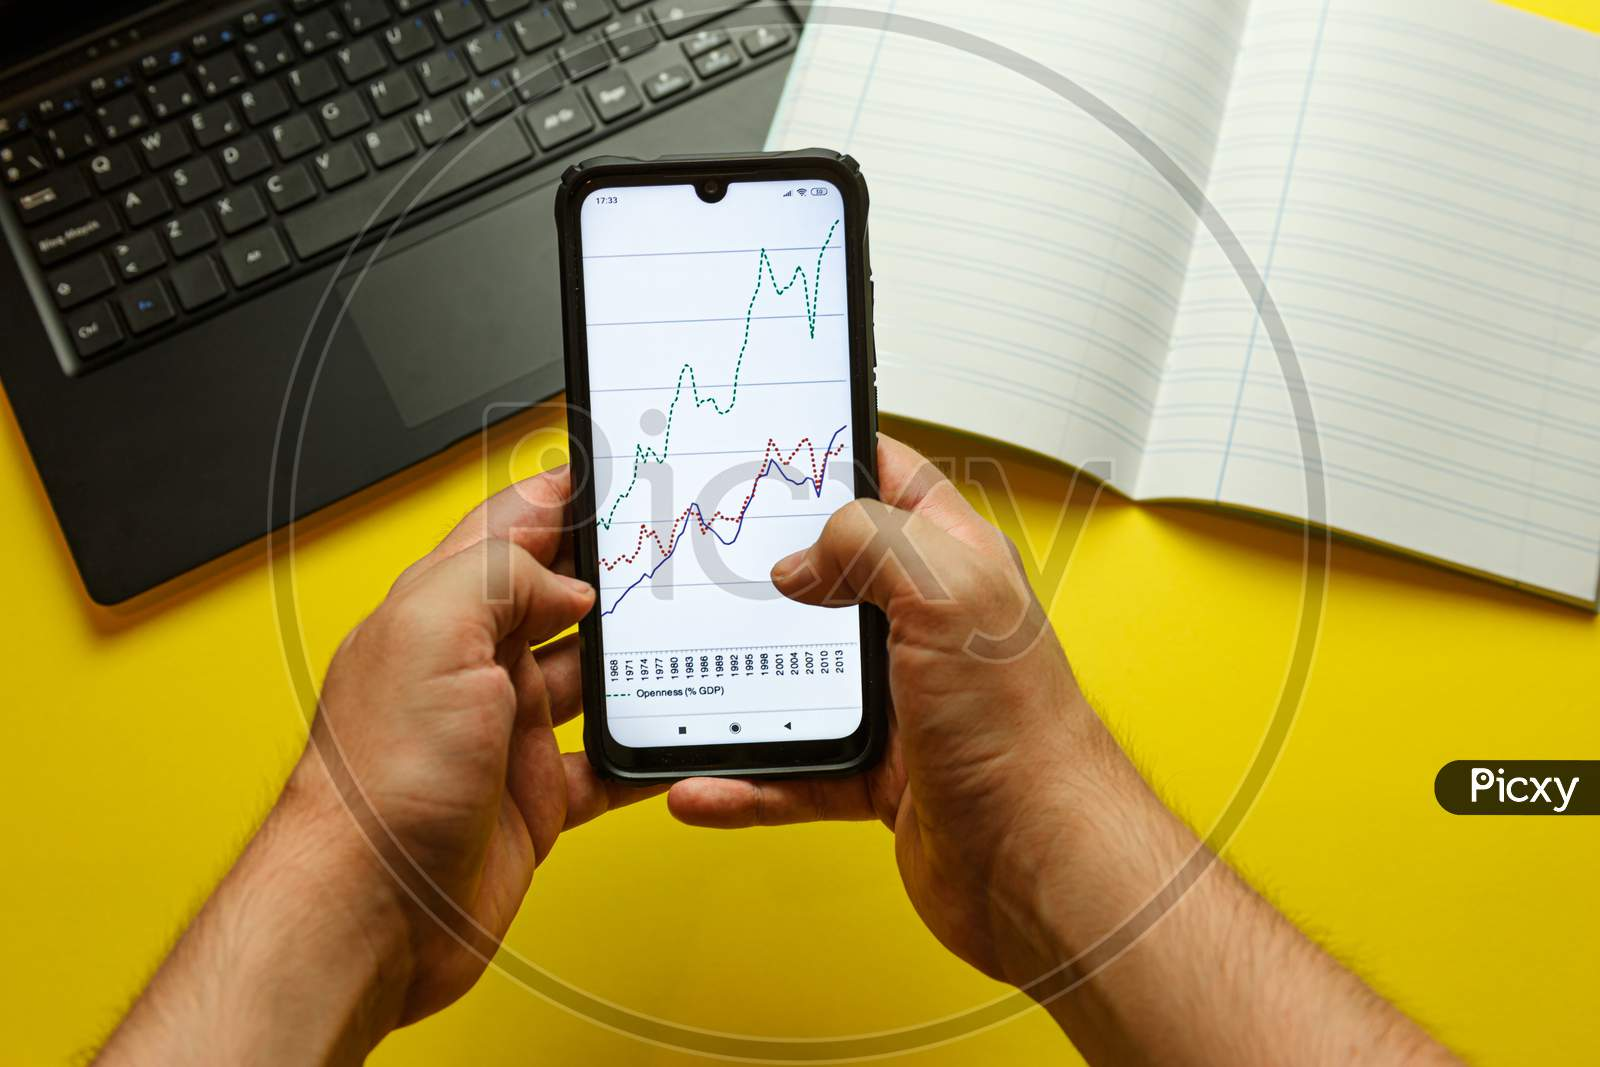 Point Of View Of Two Young Hands Grabbing A Phone With An Economical Graphic In It